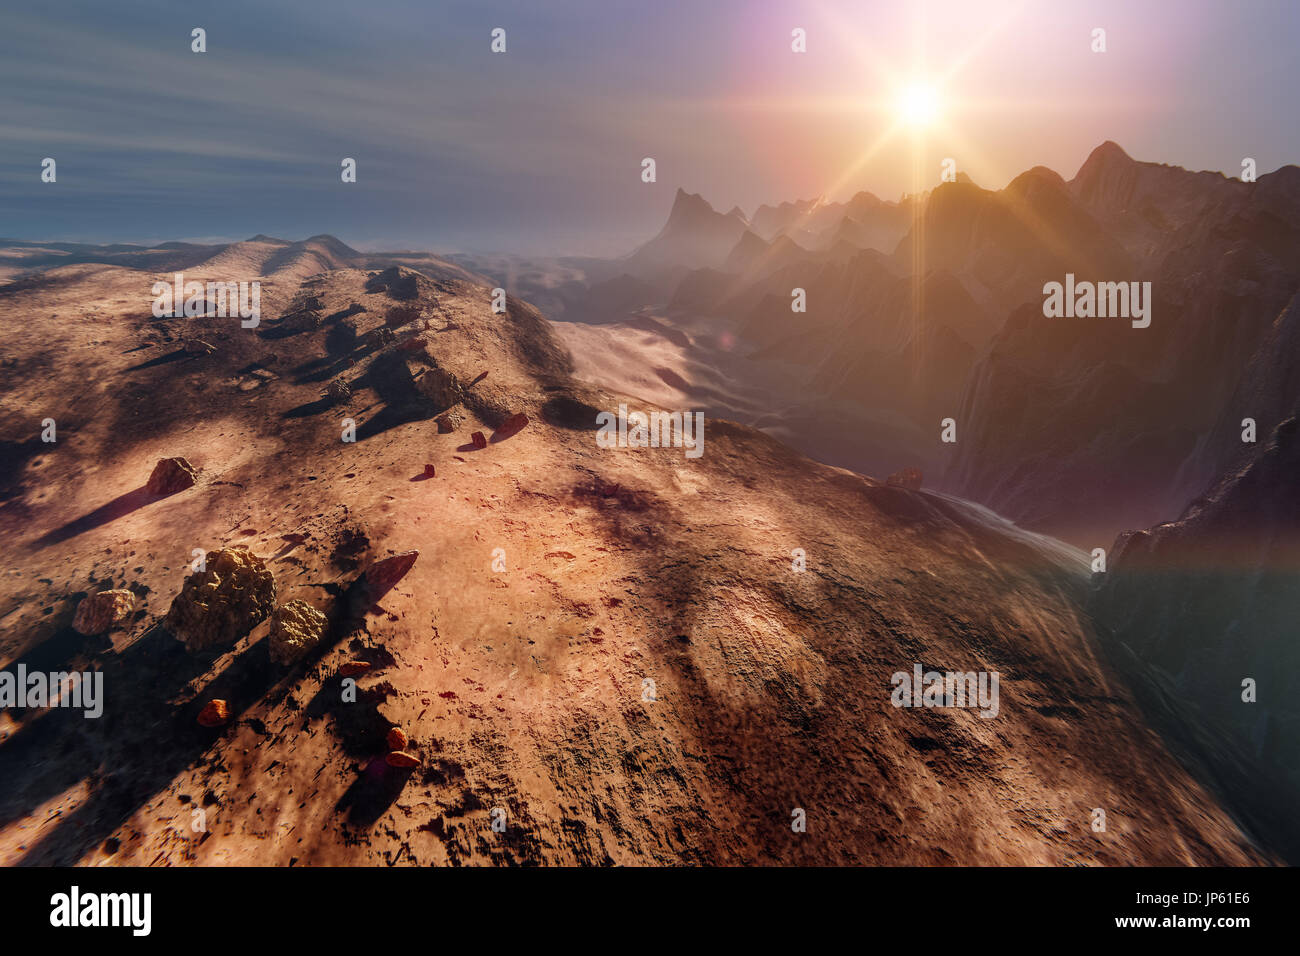 Sunset on Mars. Mountain landscape, 3d illustration Stock Photo